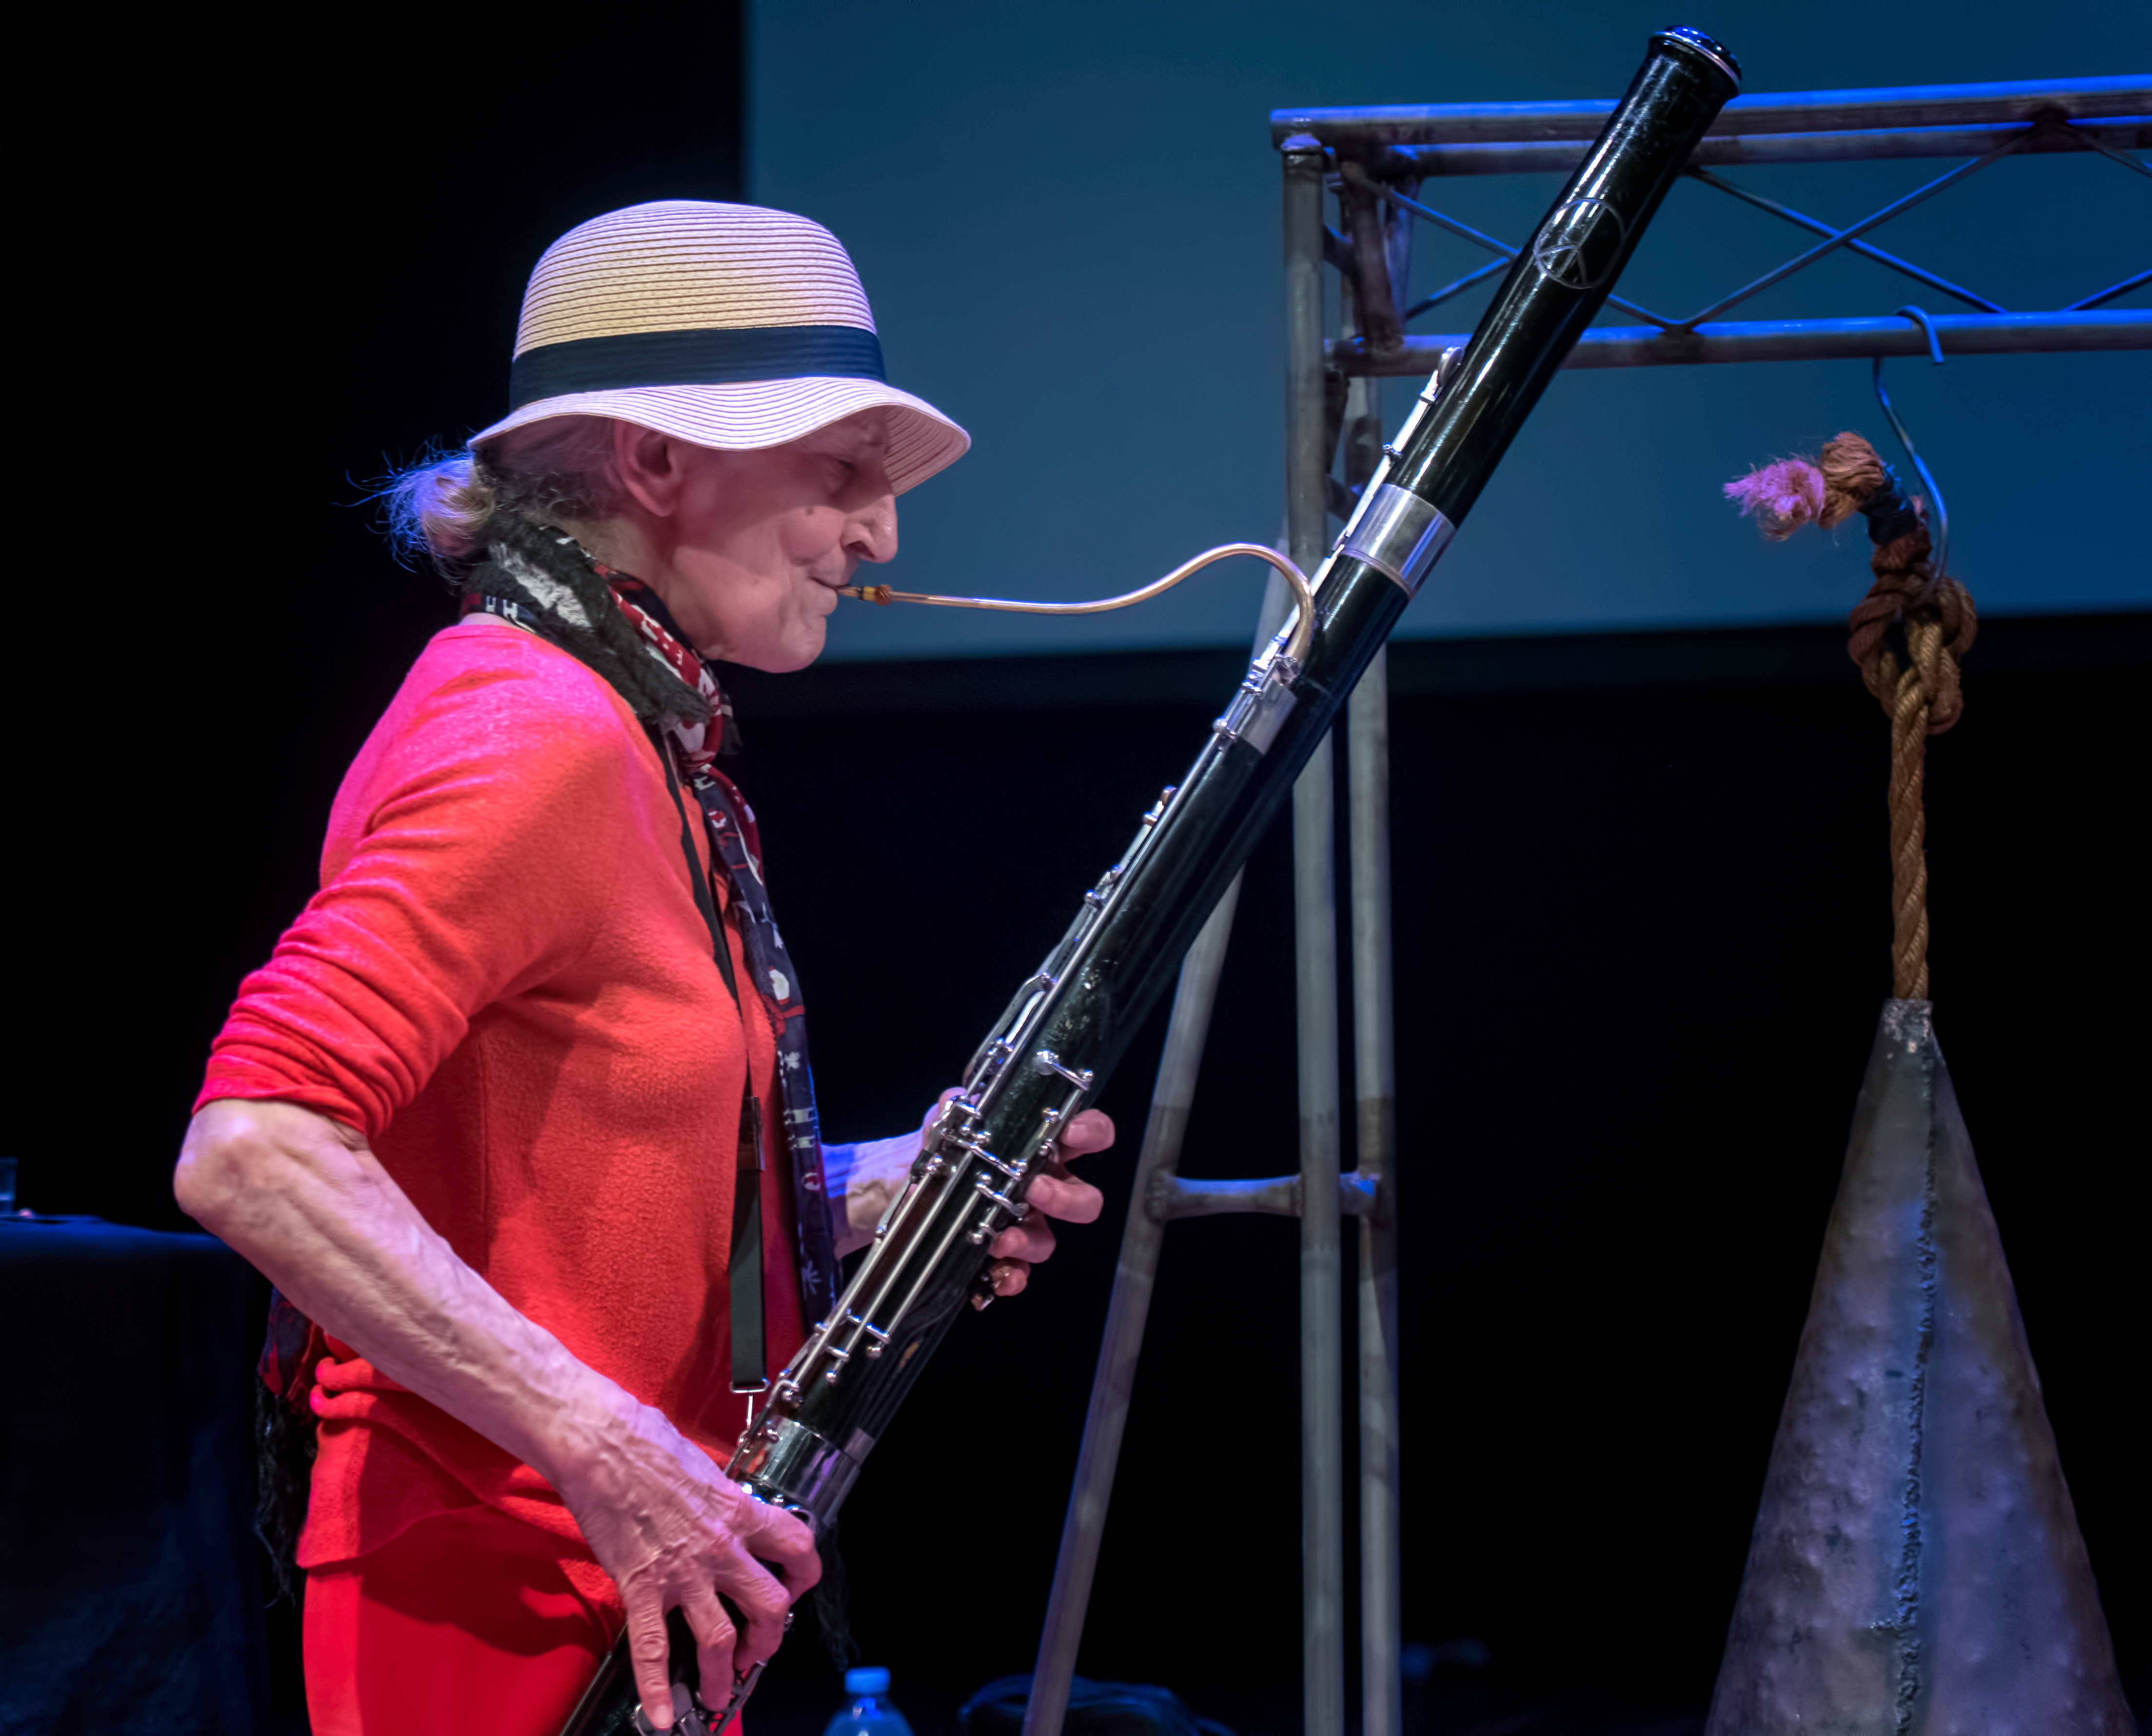 Karen Borca with the Whit Dickey Trio At the Vision Festival 2018